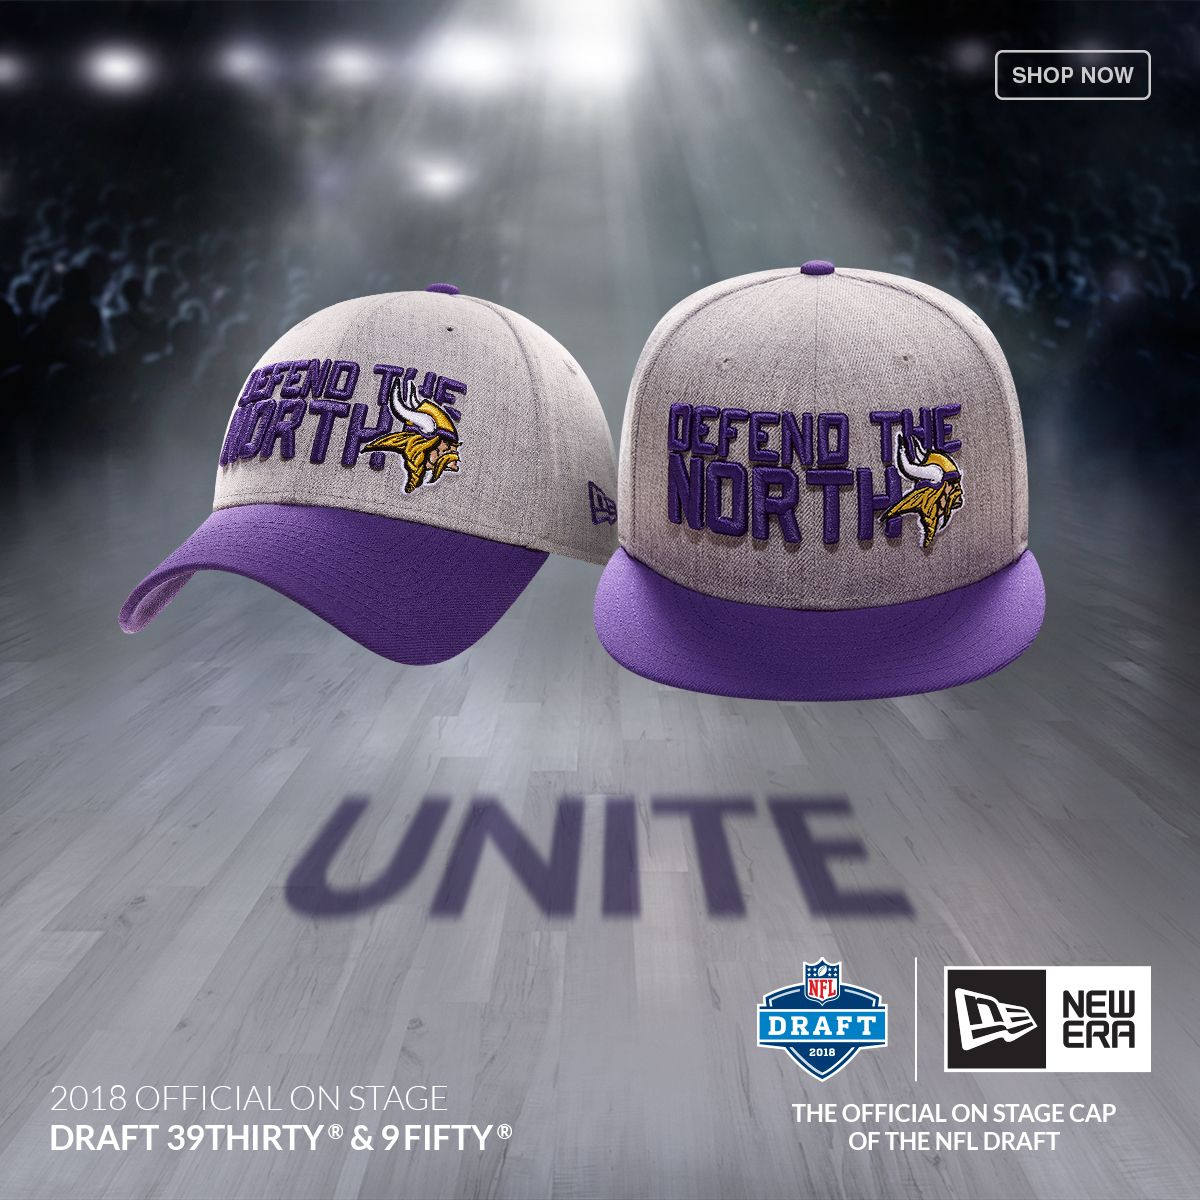 7b0f8a6b9d58a Get ready for the draft with the Minnesota Vikings New Era 2018 NFL Draft  Cap at Lids.